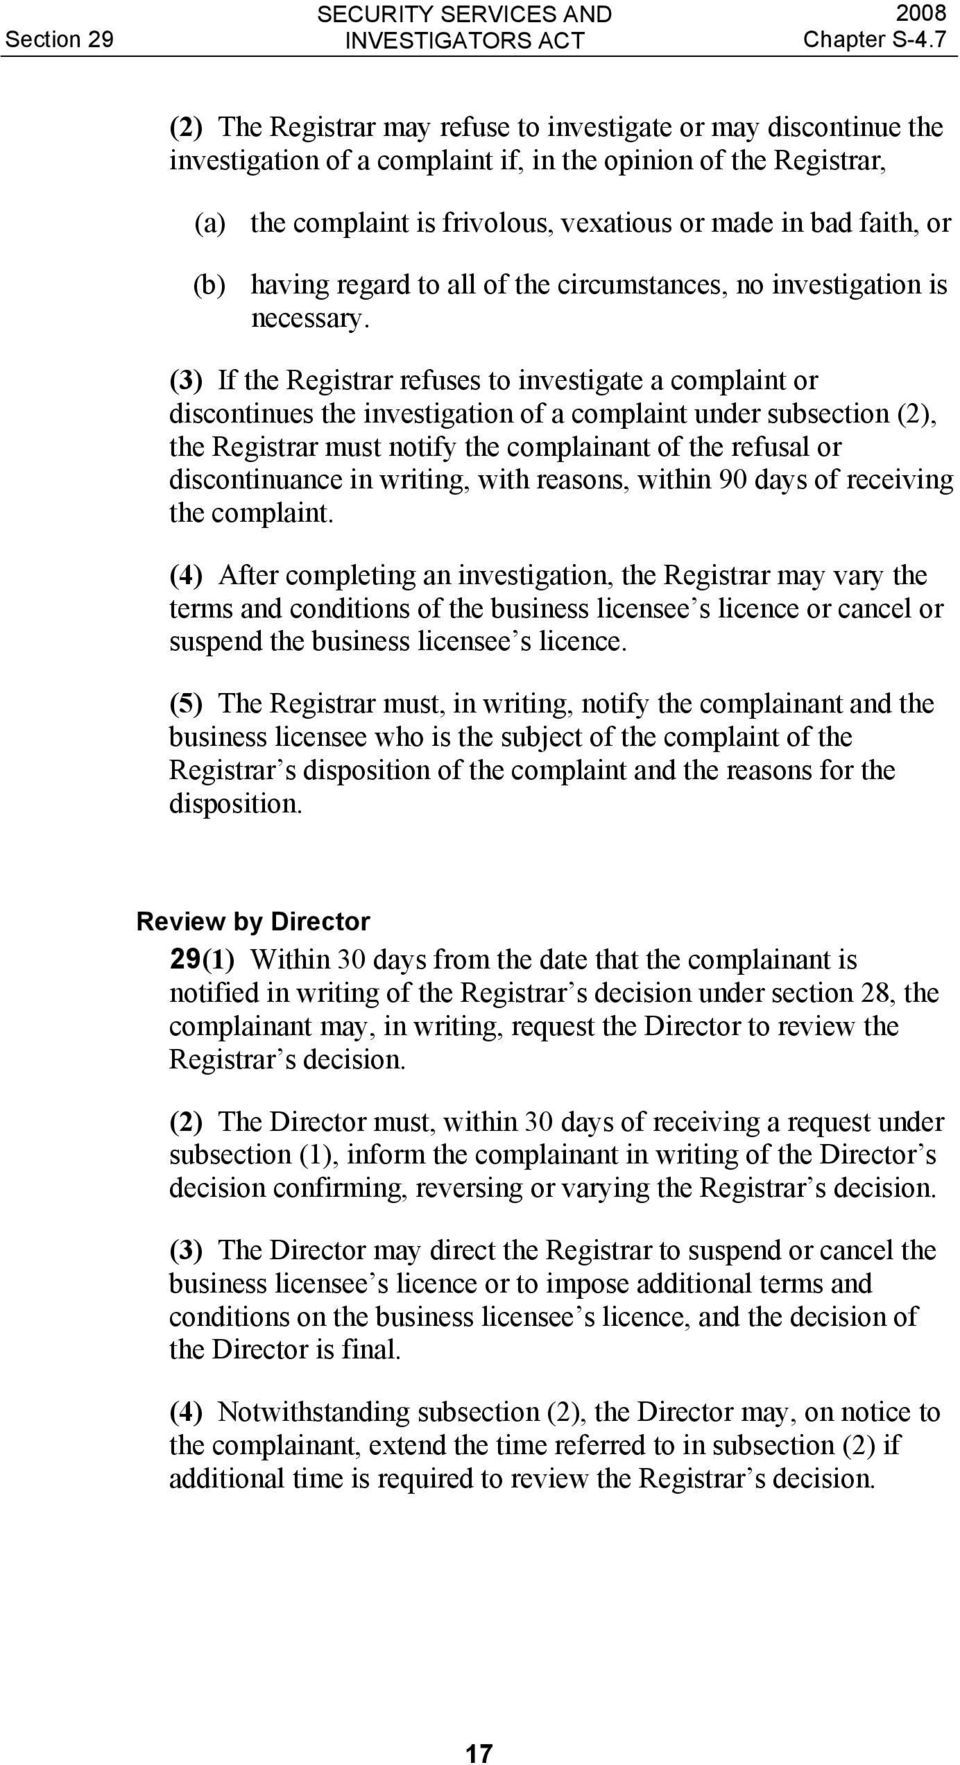 (3) If the Registrar refuses to investigate a complaint or discontinues the investigation of a complaint under subsection (2), the Registrar must notify the complainant of the refusal or